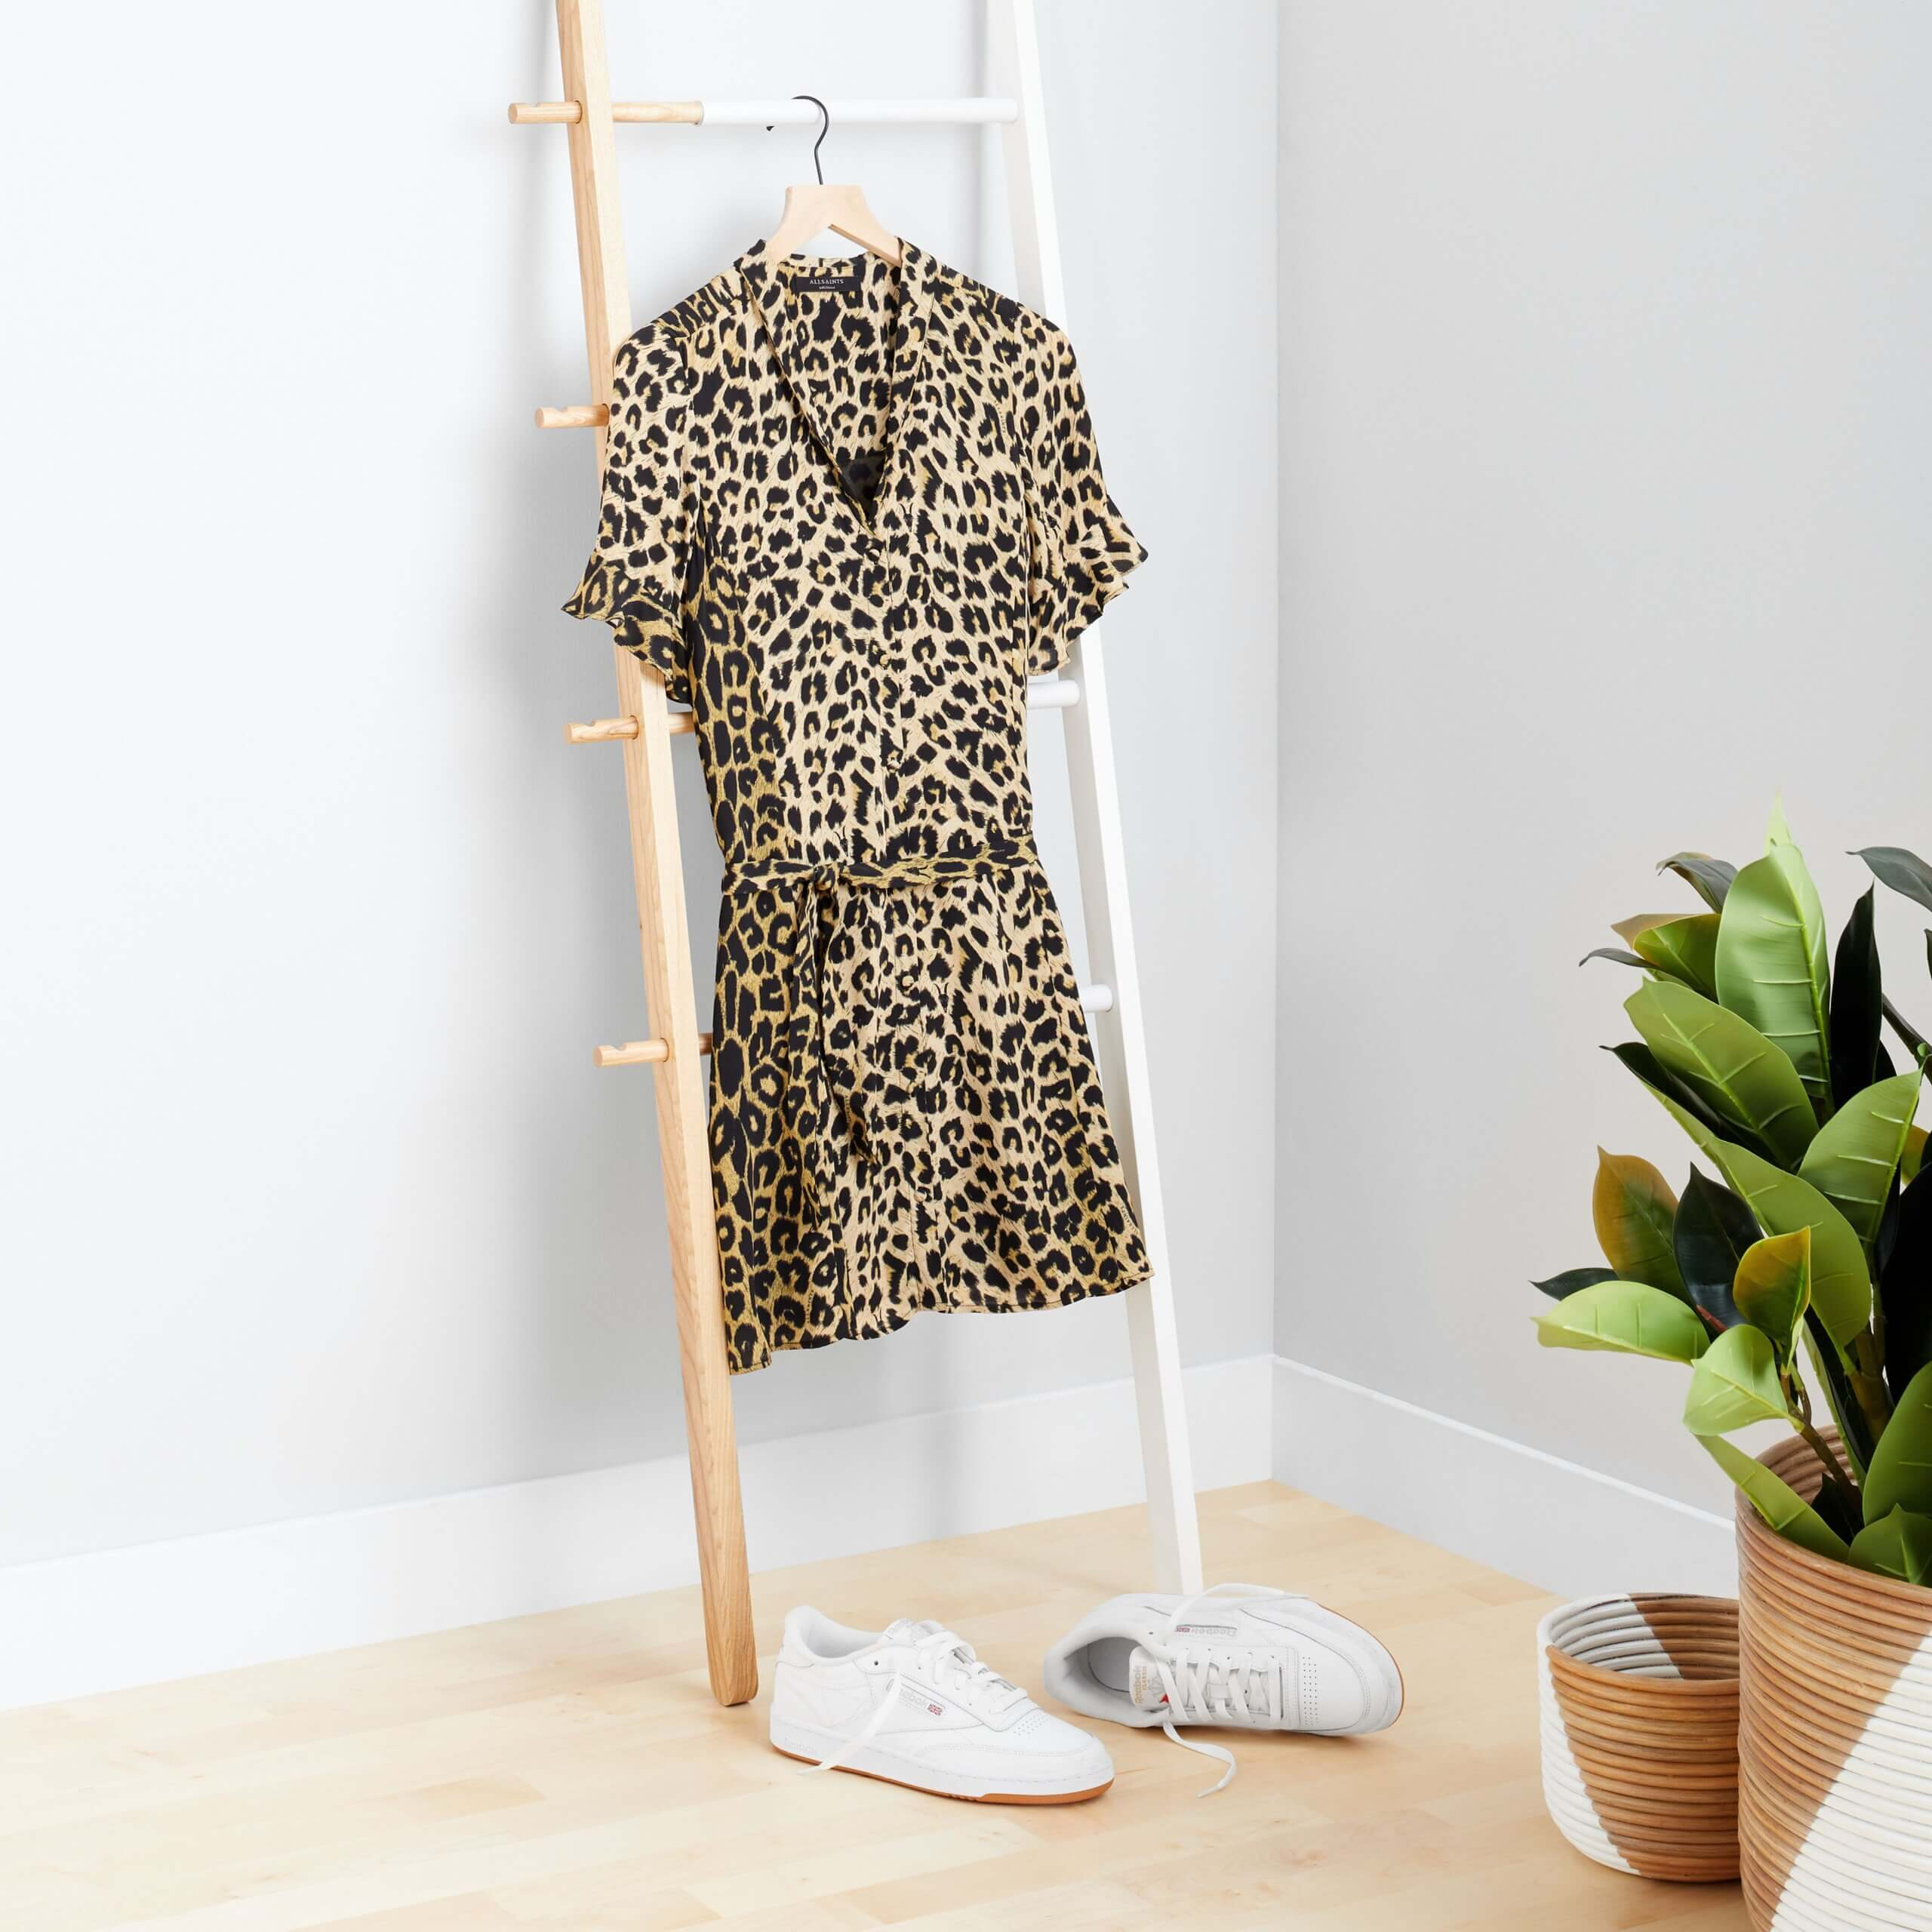 Stitch Fix Women's rack image with brown cheetah print dress hanging on wooden rack with white sneakers on the floor.